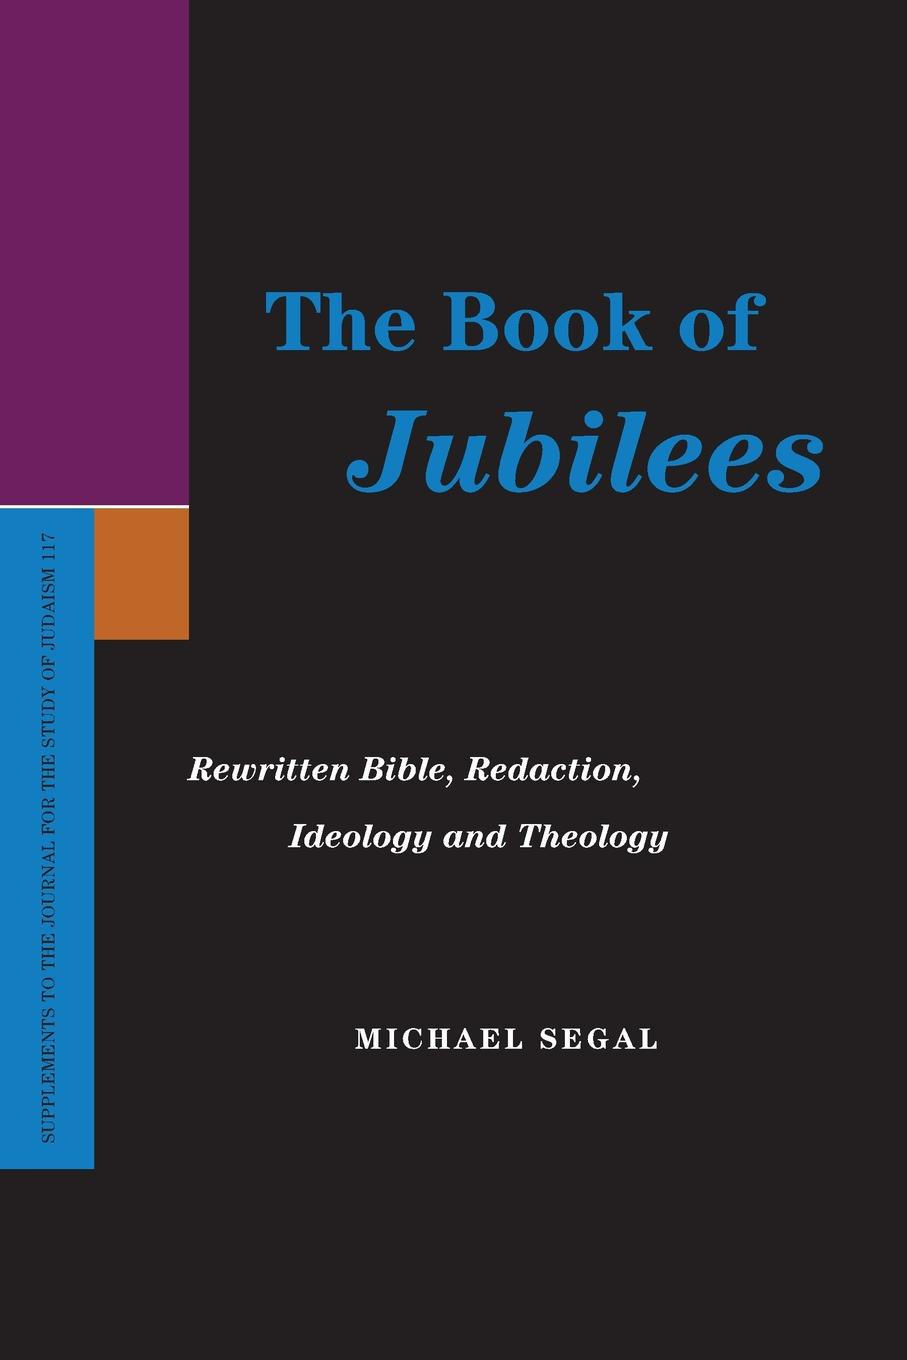 Michael Segal The Book of Jubilees. Rewritten Bible, Redaction, Ideology and Theology burke o long planting and reaping albright politics ideology and interpreting the bible